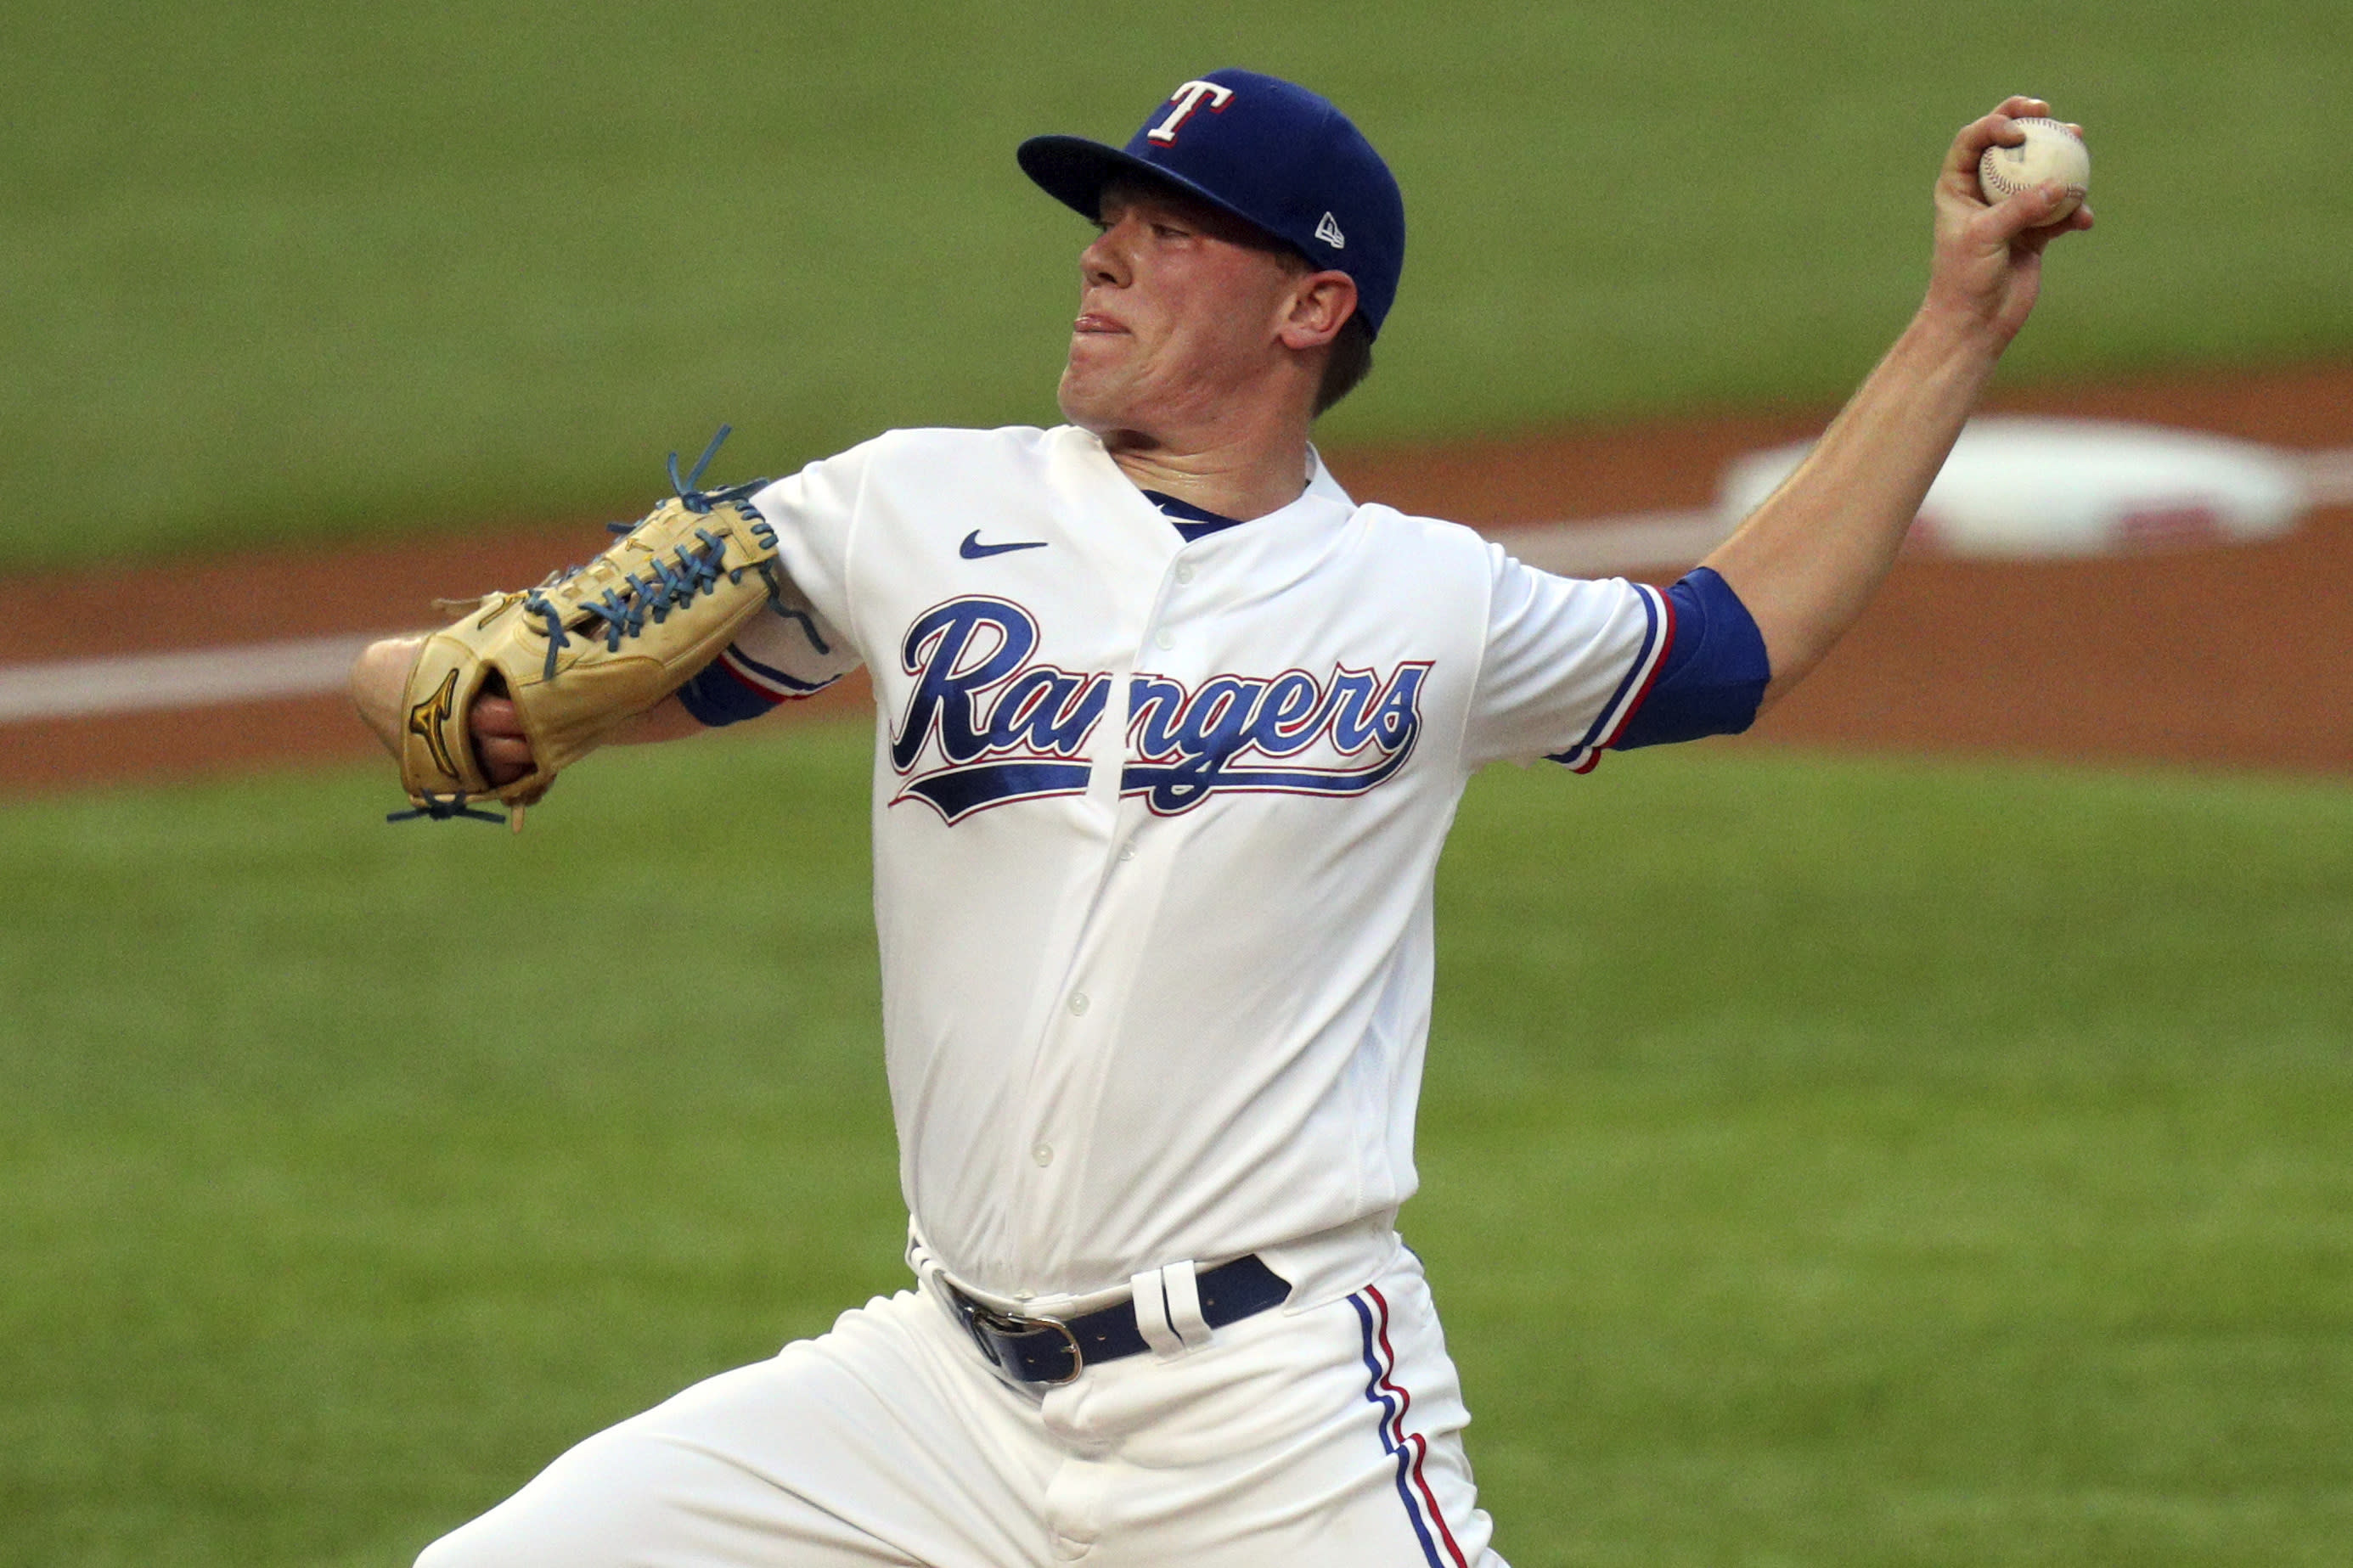 Texas Rangers pitcher Kolby Allard works the first inning in the second baseball game of a doubleheader against the Oakland Athletics on Saturday, Sept. 12, 2020, in Arlington, Texas. (AP Photo/Richard W. Rodriguez)